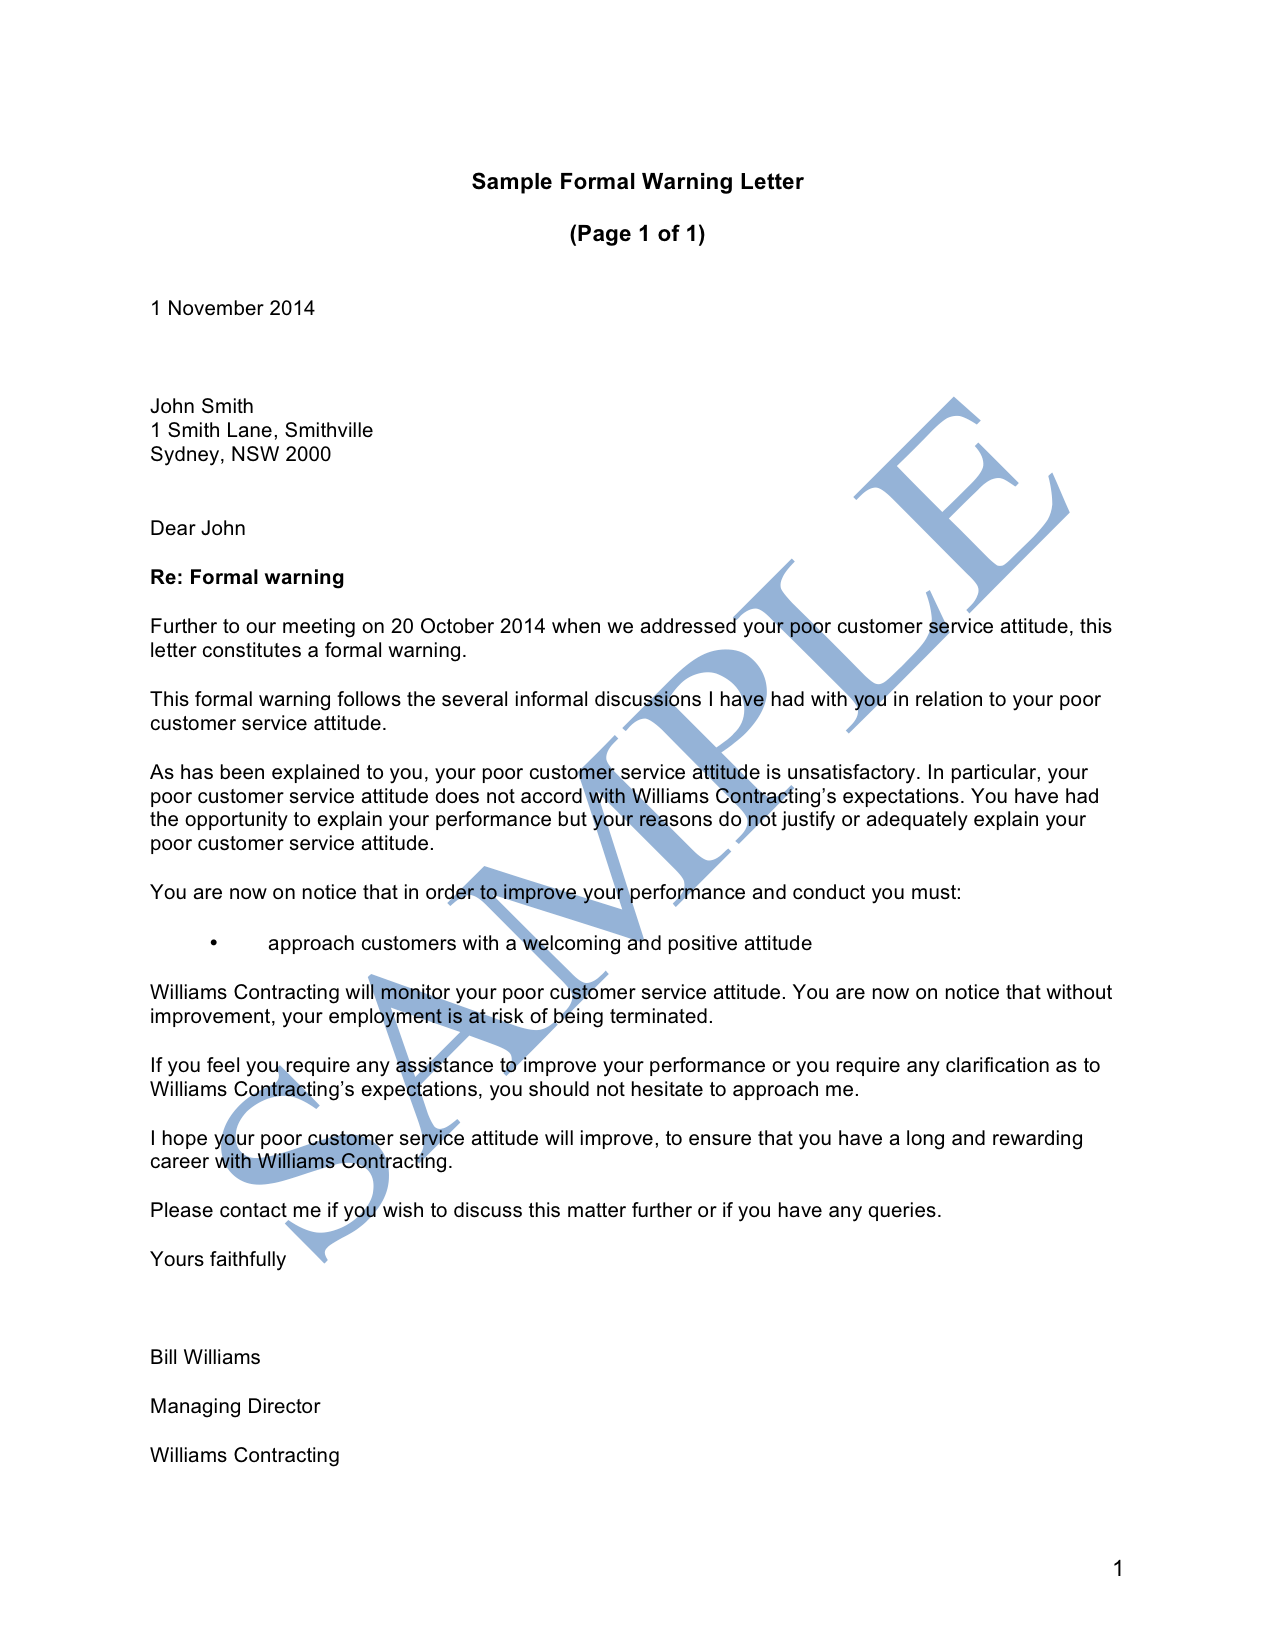 Formal Warning Letter Sample What Does The Partnership Agreement Cover